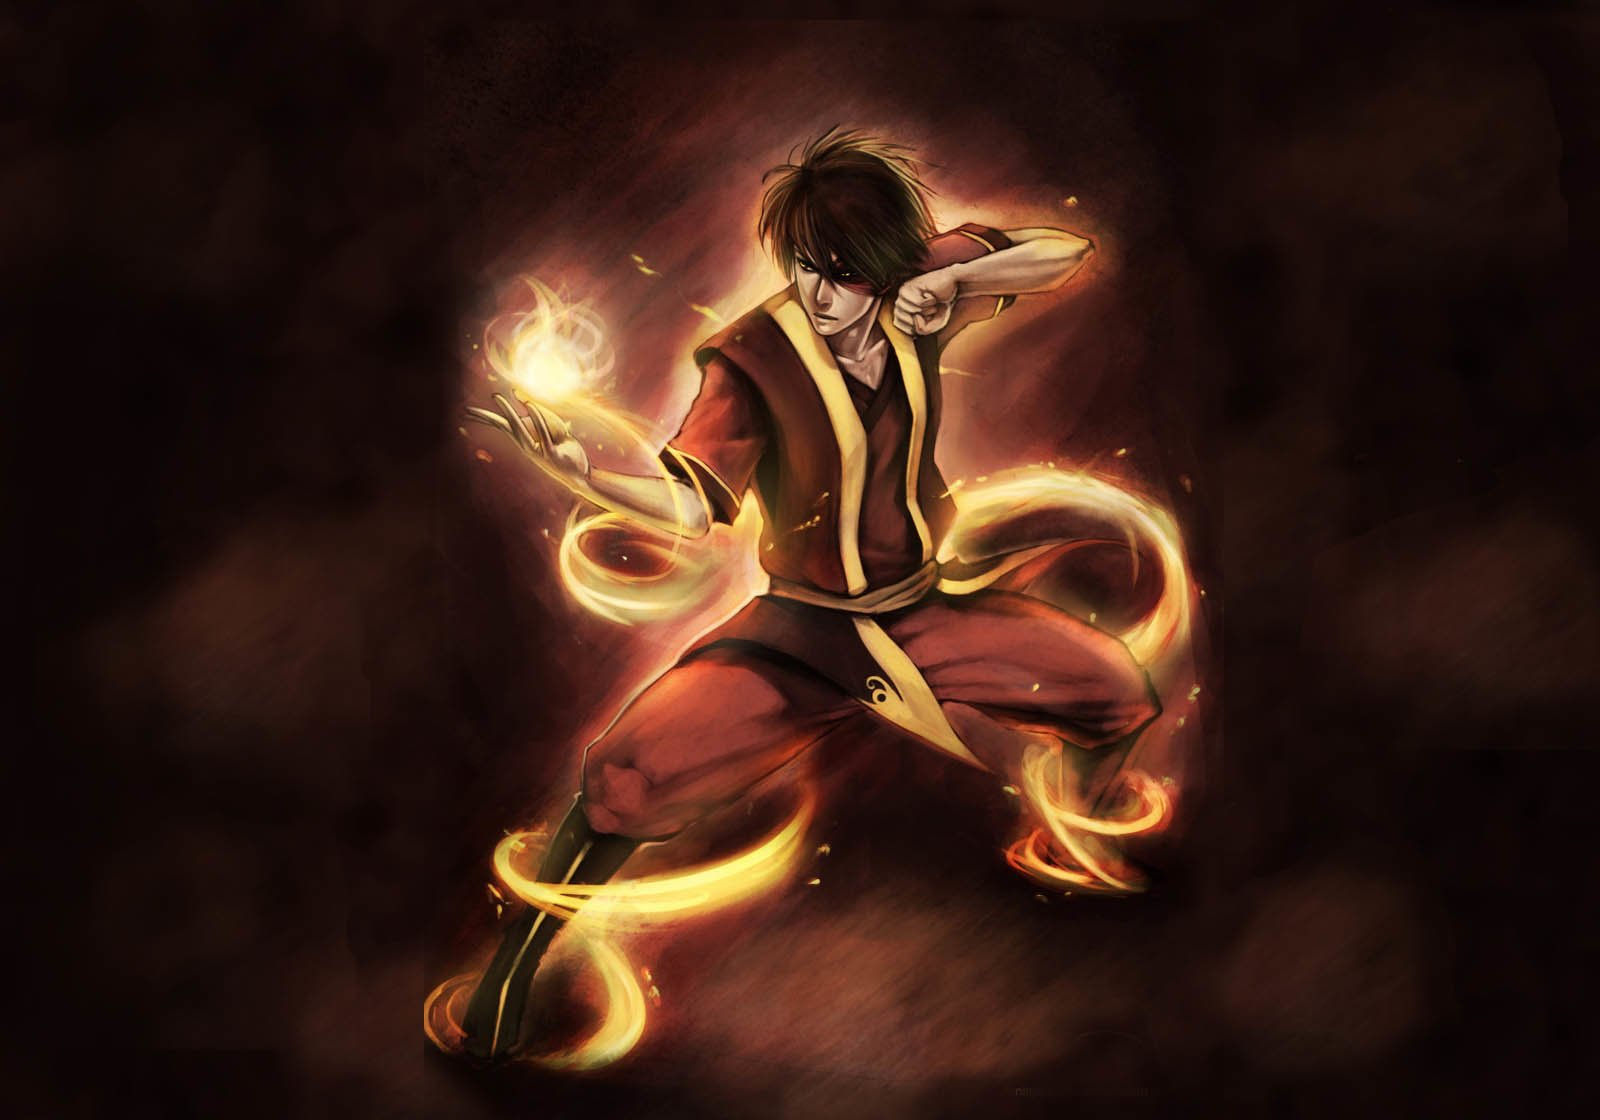 7 zuko (avatar) hd wallpapers | background images - wallpaper abyss